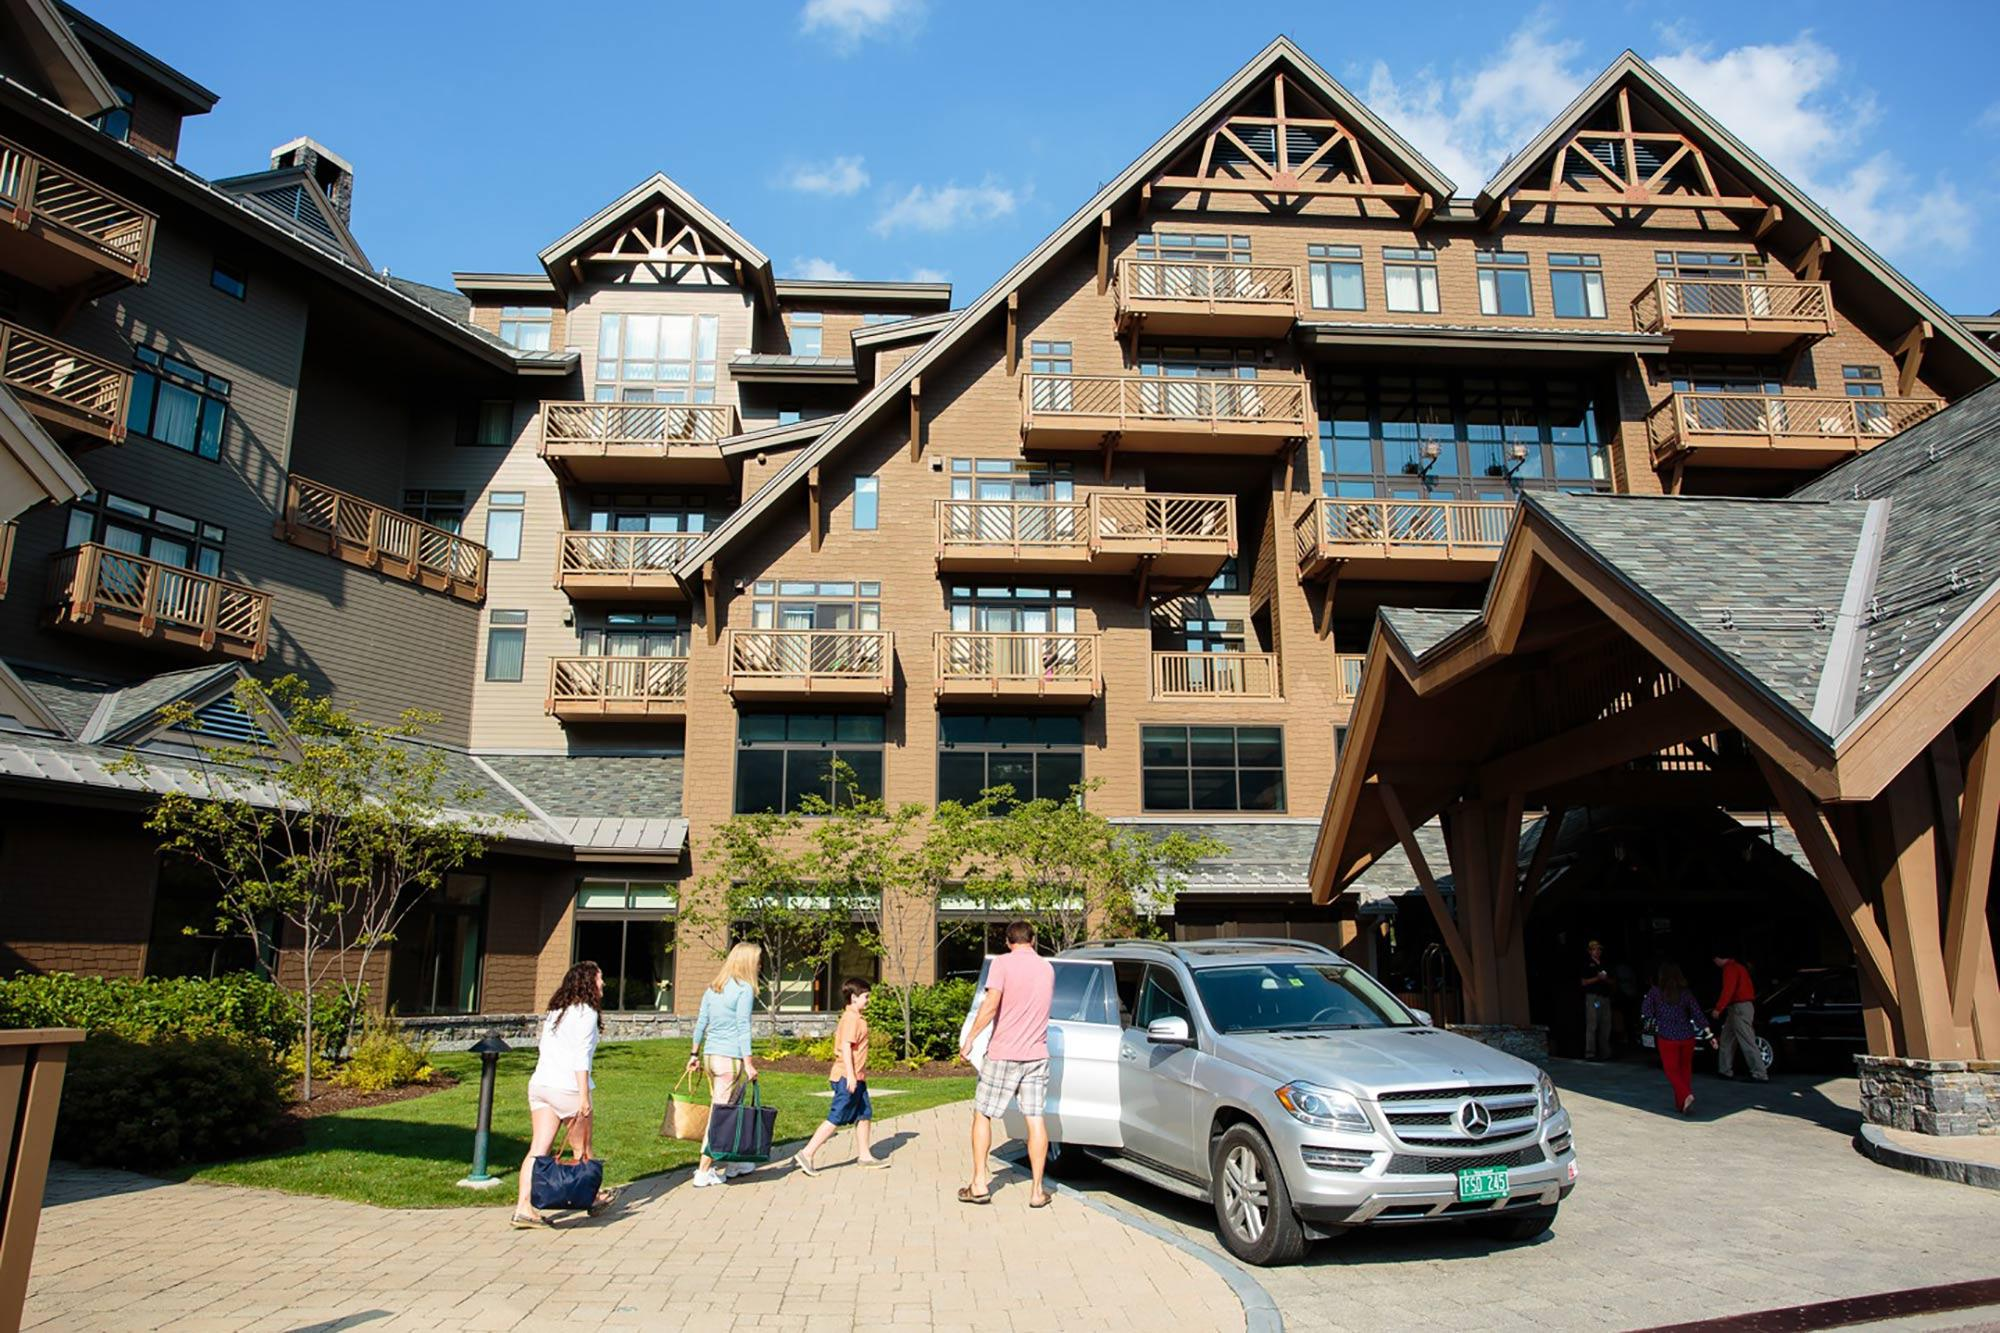 luxury lodging in stowe, vt | ski in ski out getaways & vacations